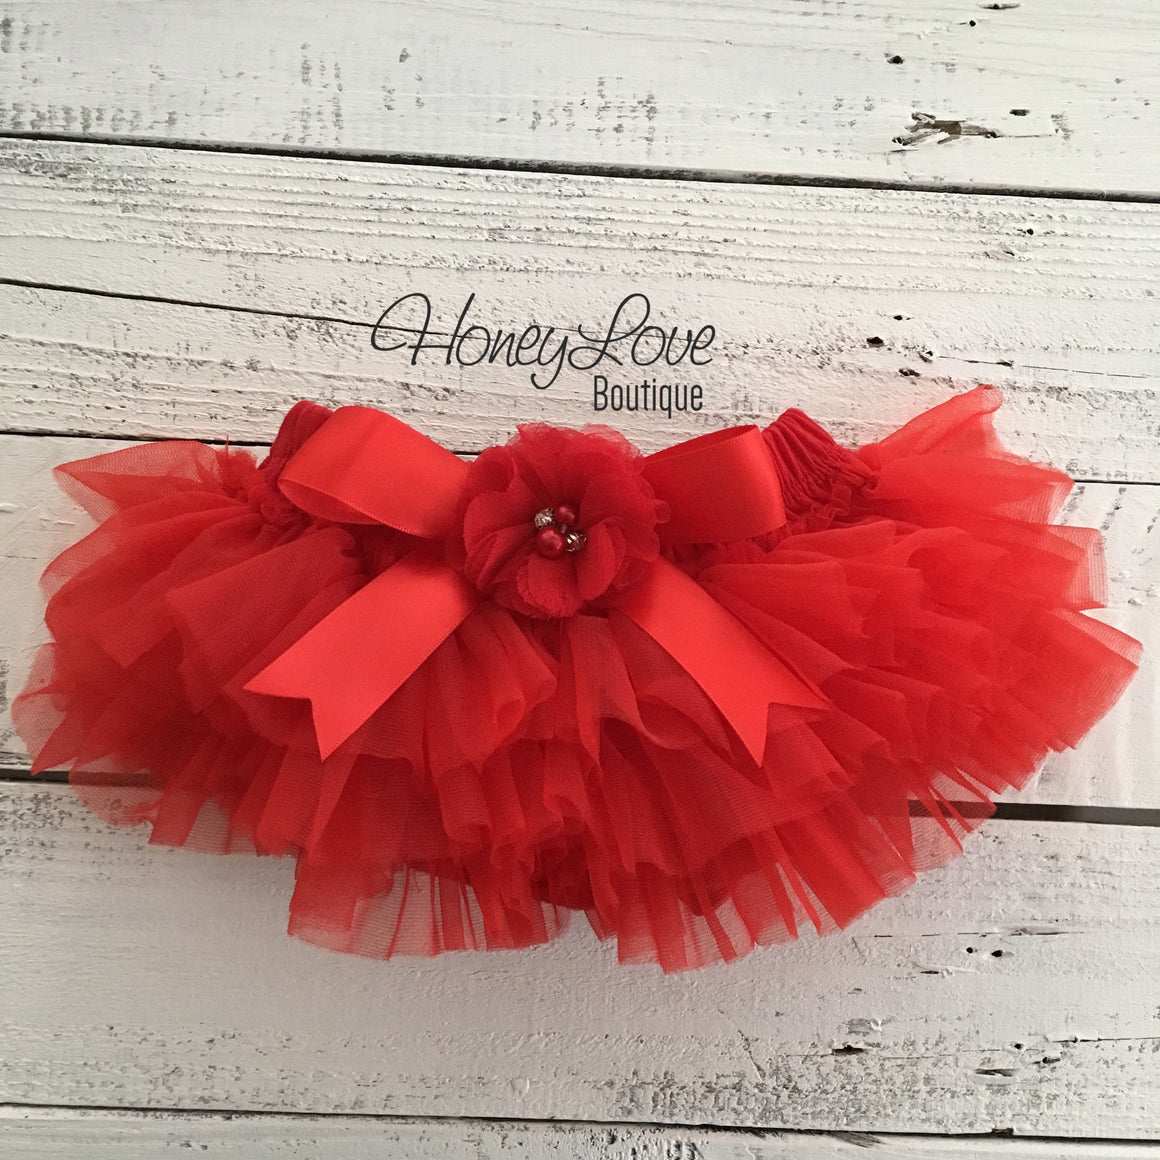 Red tutu skirt bloomers - embellished red rhinestone/pearl flower - HoneyLoveBoutique